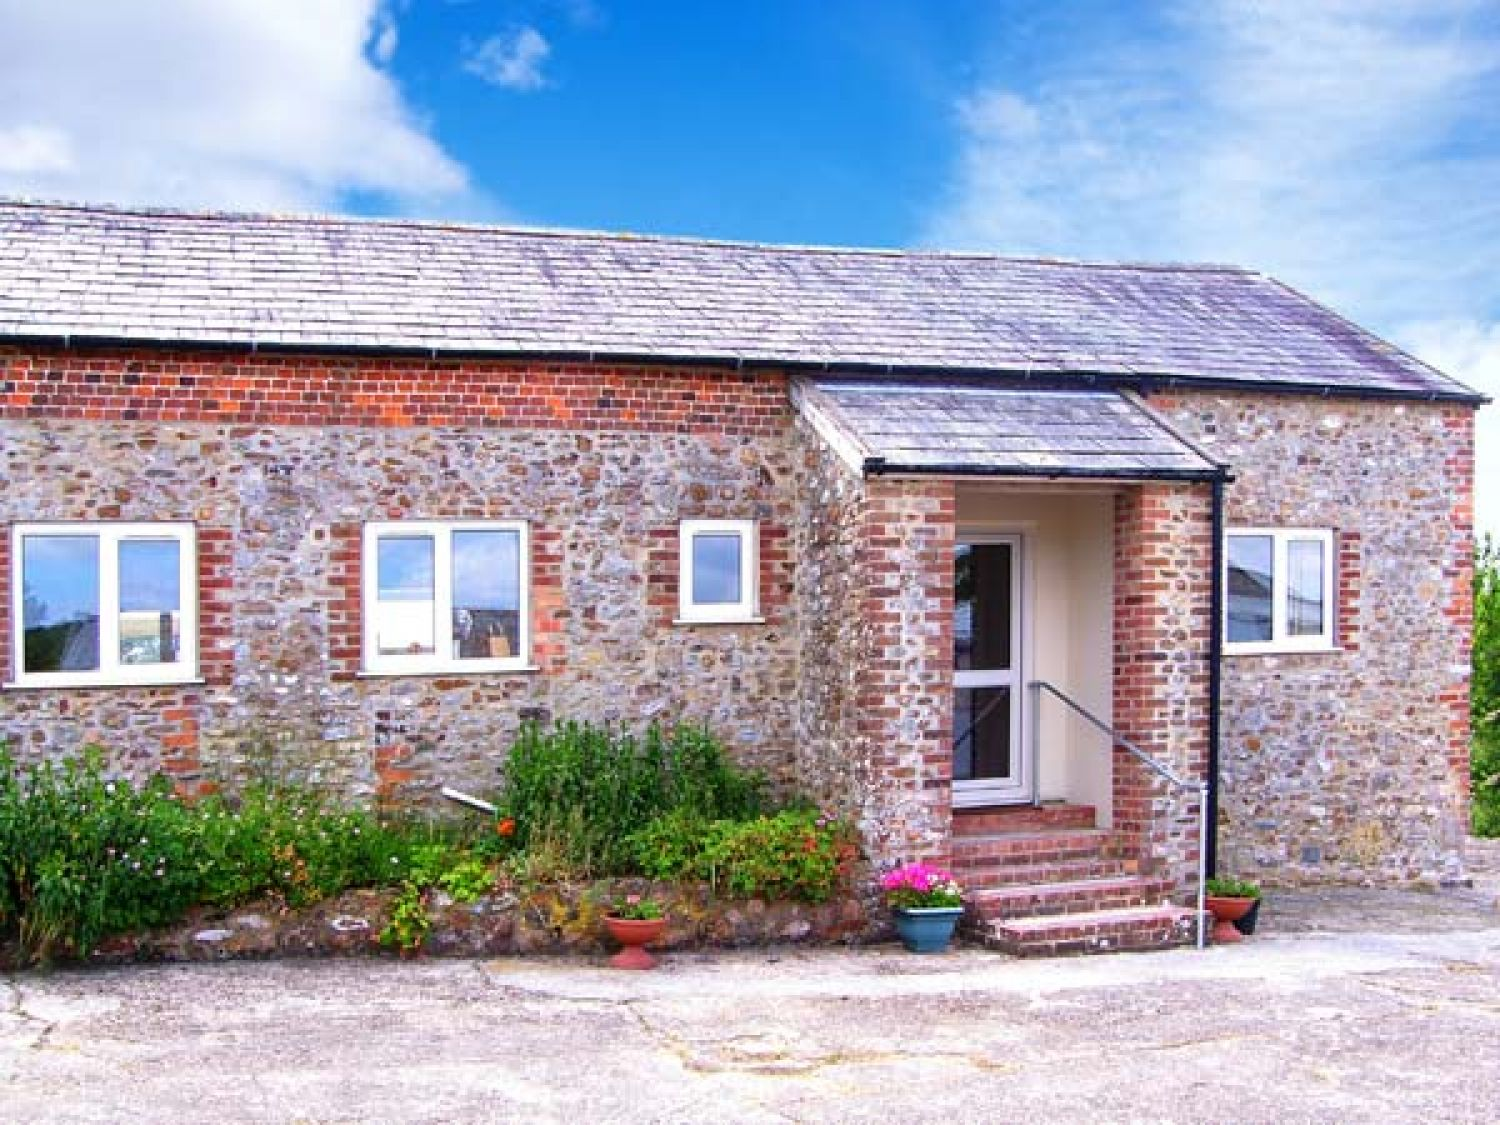 2 Cowdea Farm - Dorset - 1539 - photo 1